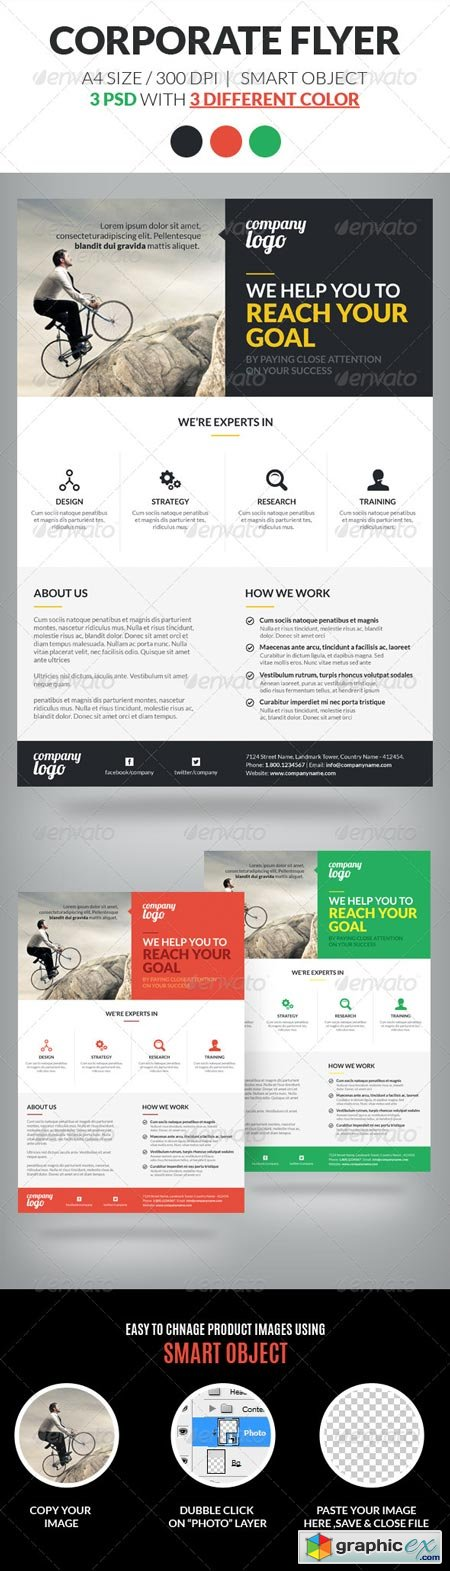 Corporate Flyer Template Vol 2 6955430